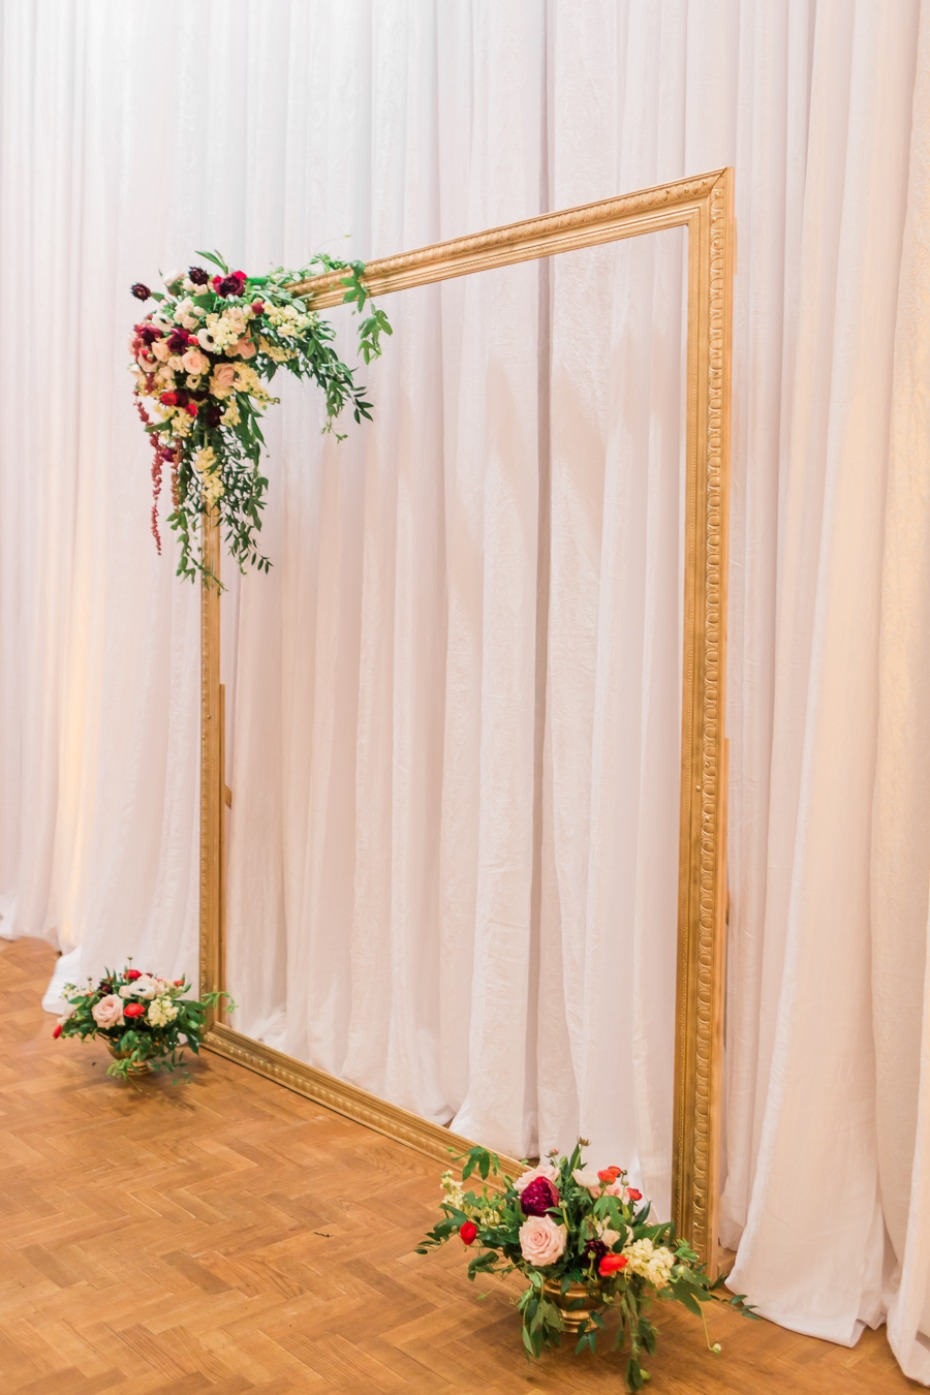 gold wedding backdrop mimics a frame for a painting